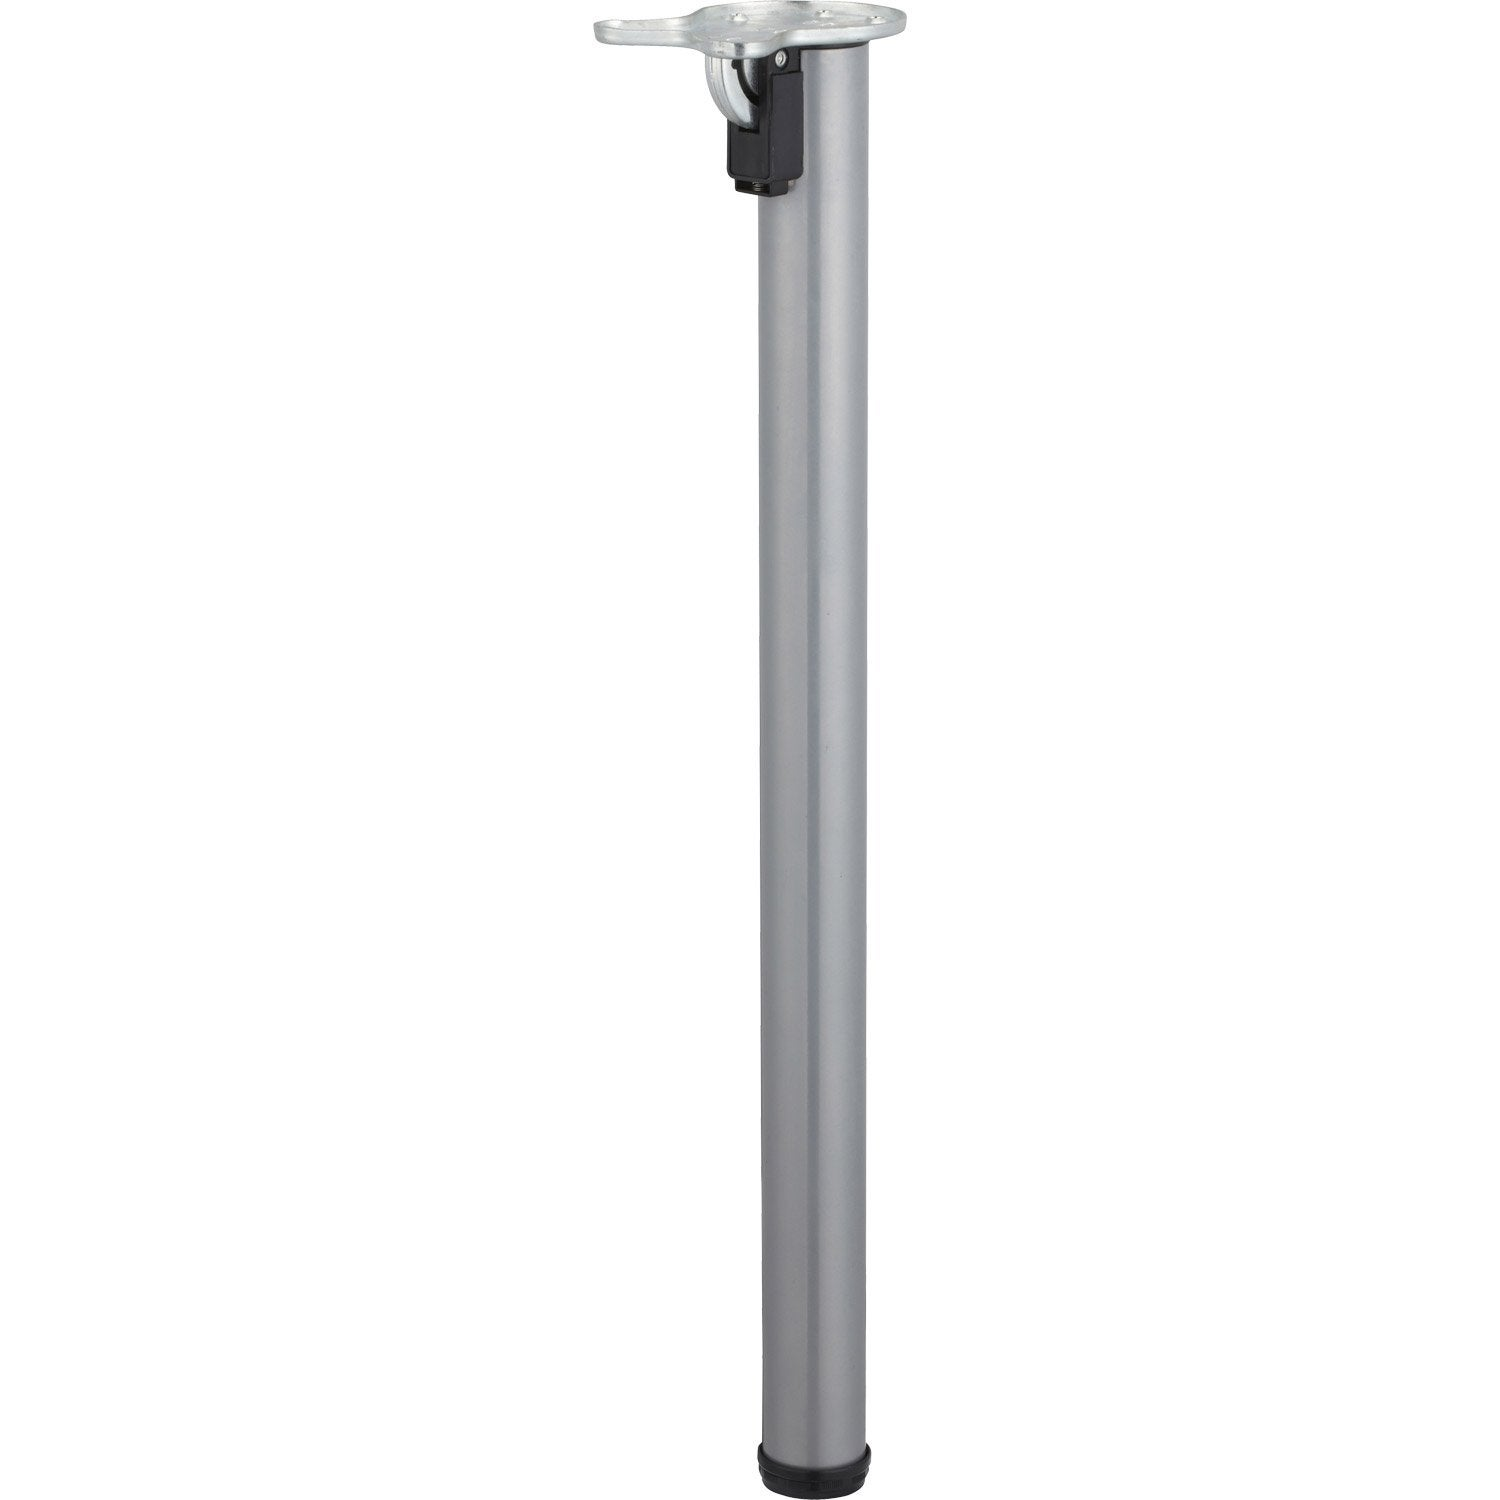 Pied de table cylindrique rabattable acier poxy gris 71 cm leroy merlin - Leroy merlin pied de table ...